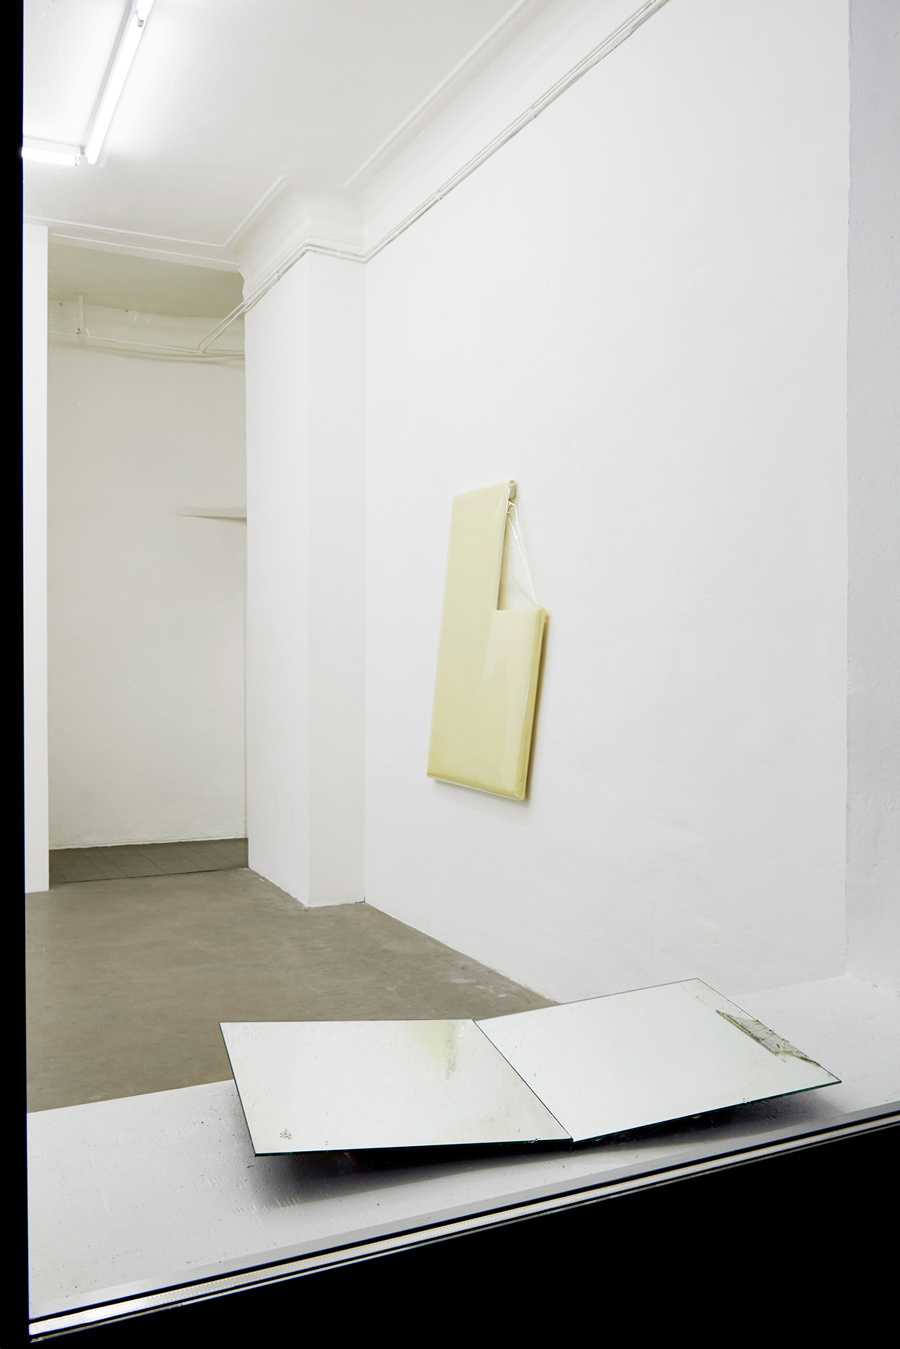 Installation view from solo project @ Jan Kaps